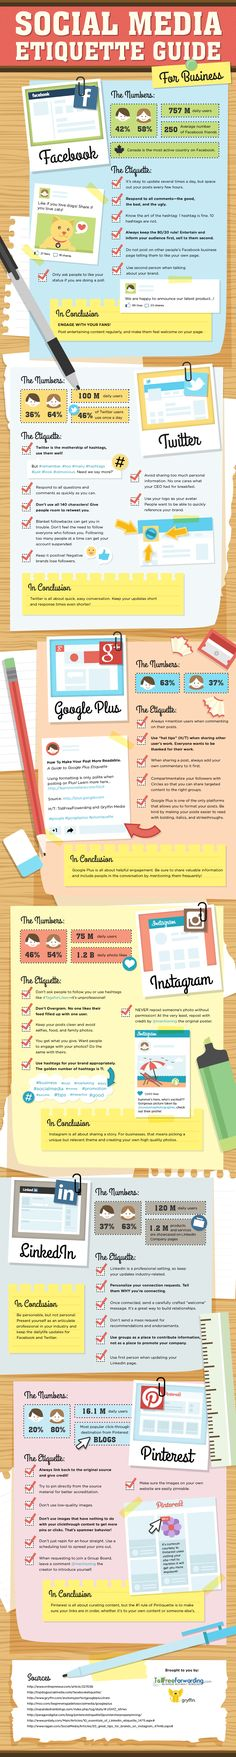 Your Complete Social Media Etiquette Guide [INFOGRAPHIC]